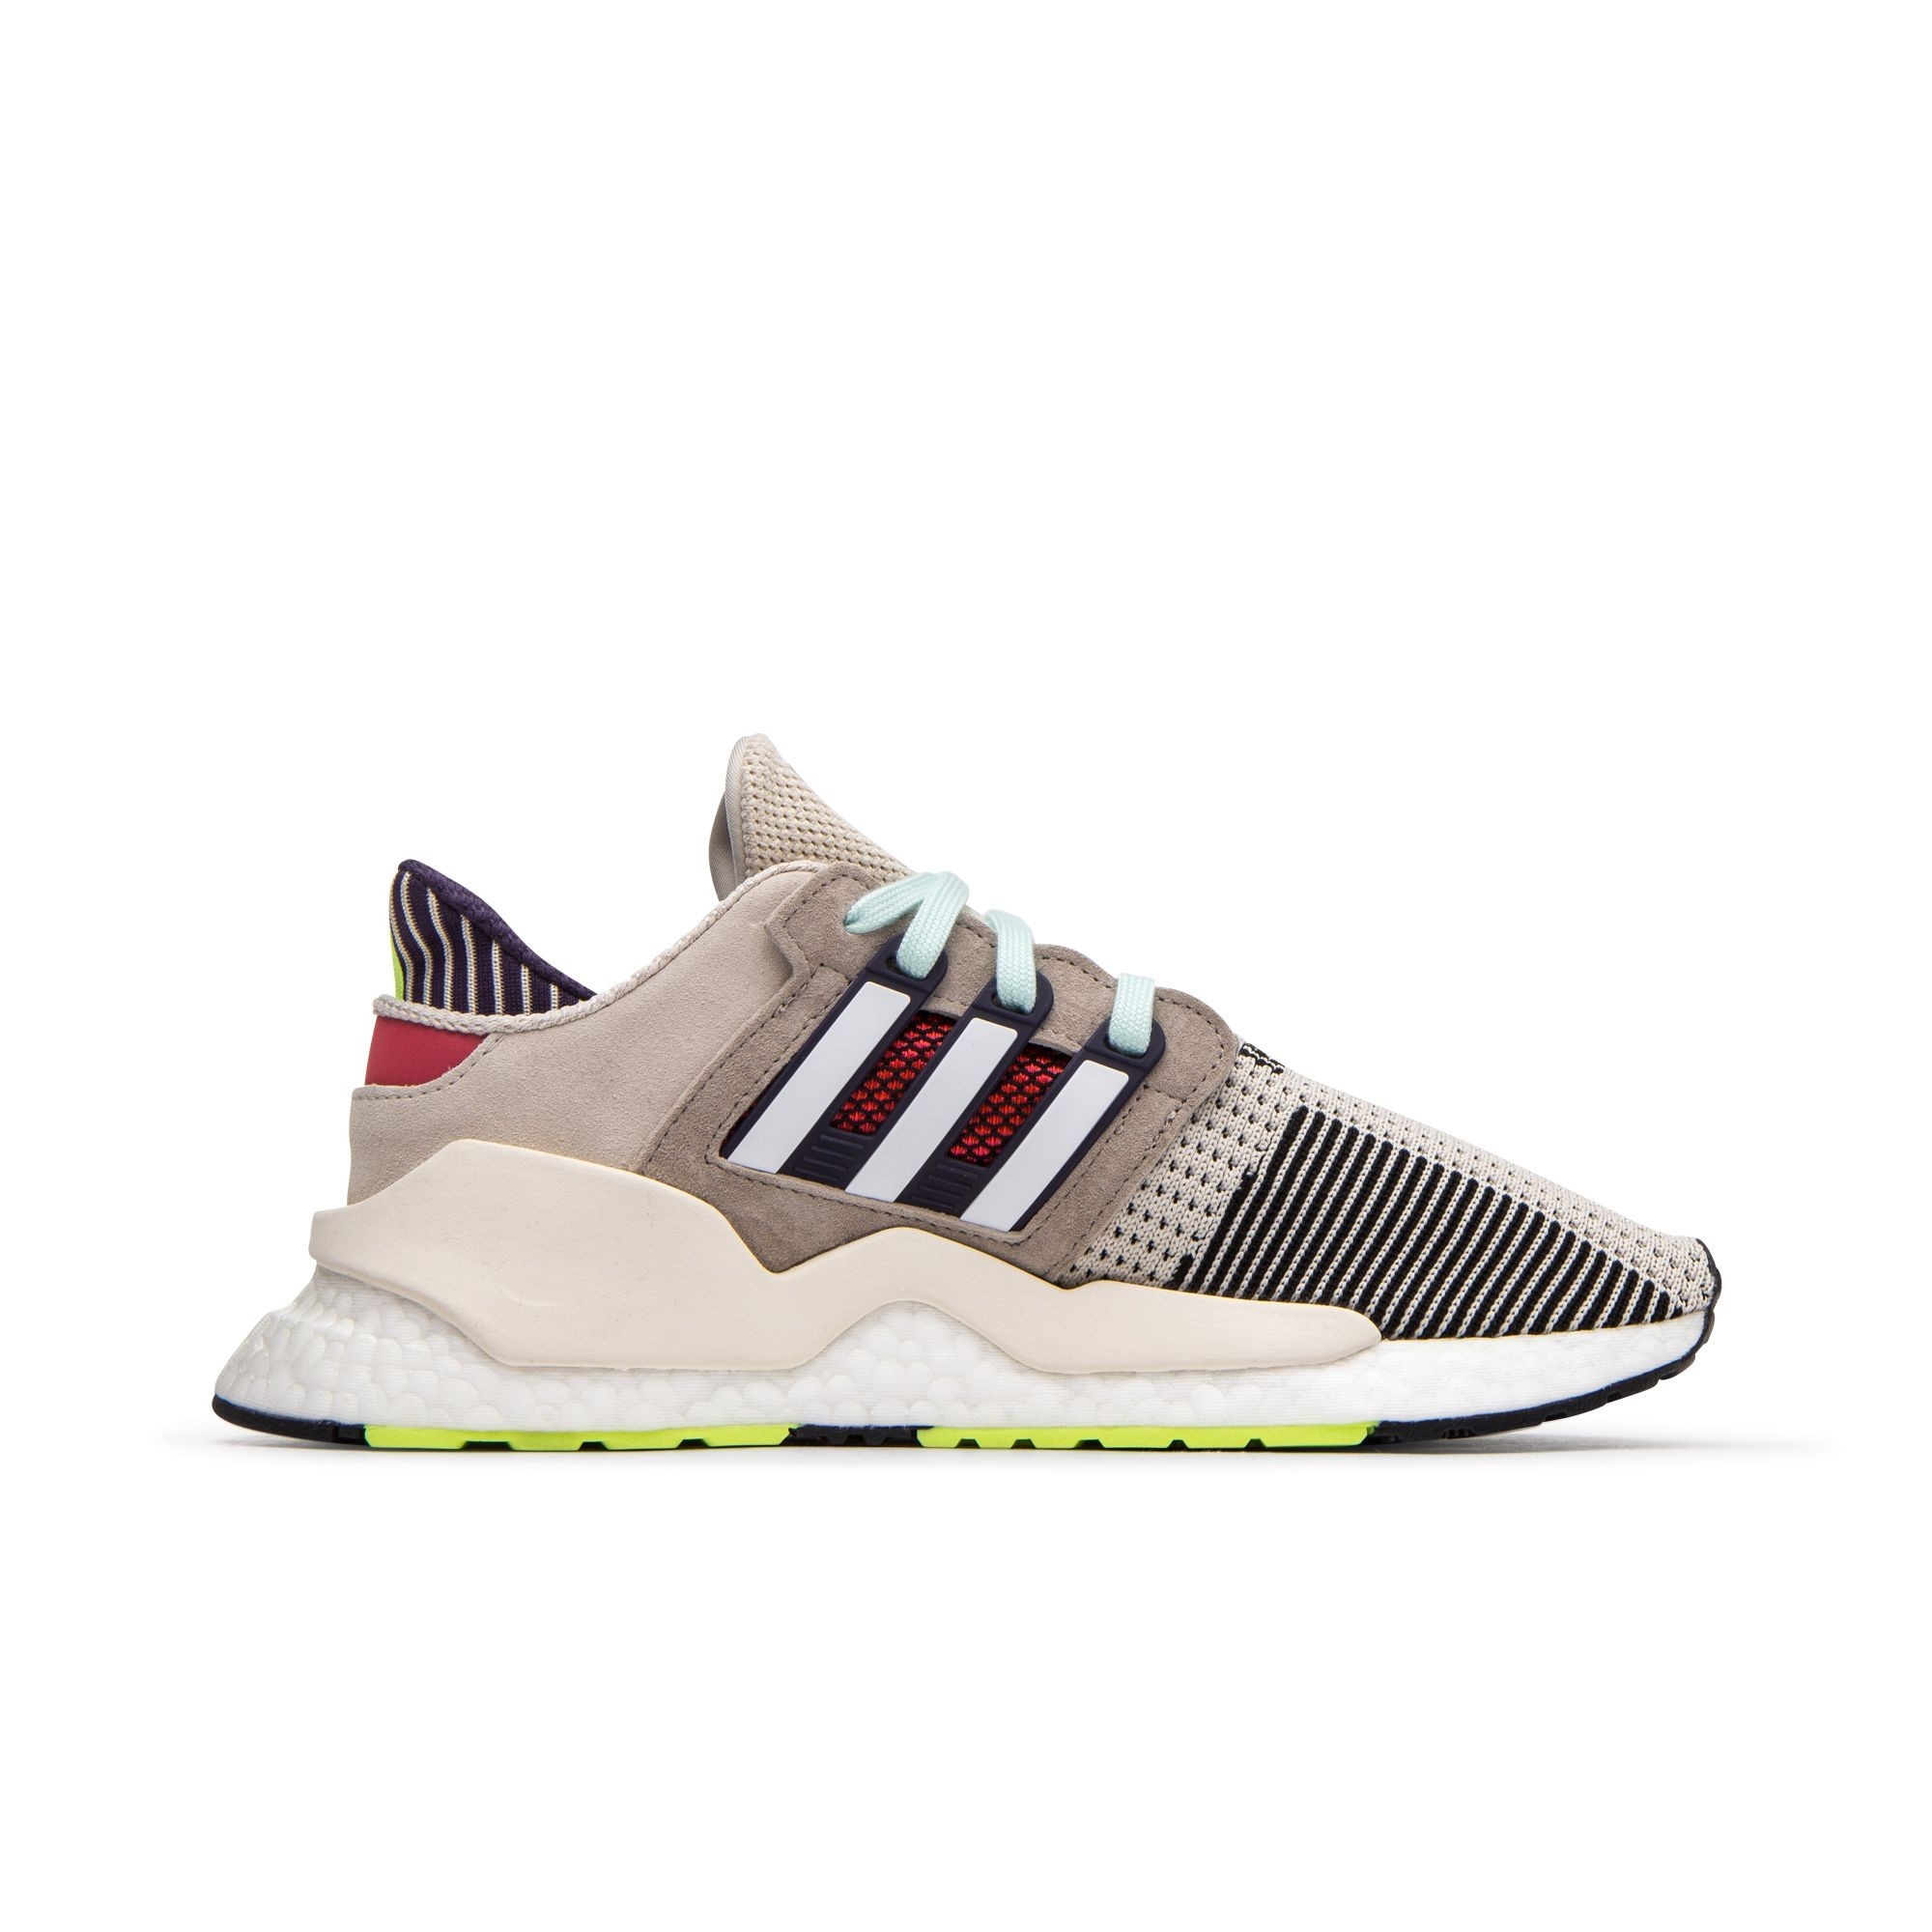 adidas EQT Support 91/18 Beige/Purple CM8409